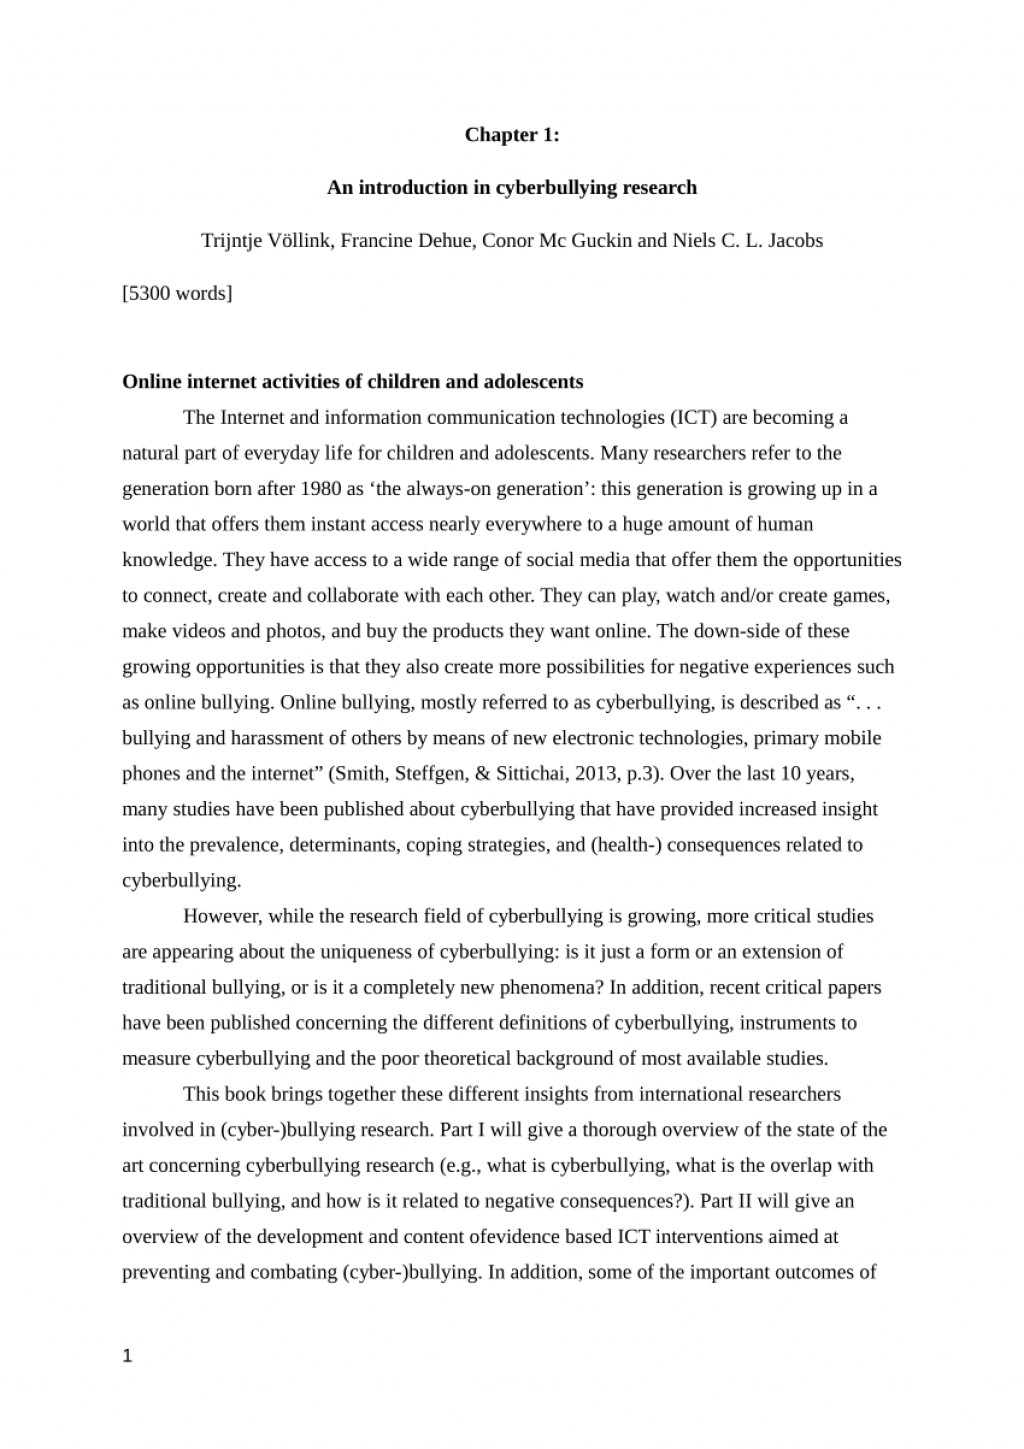 001 Cyberbullying Research Paper Chapter Excellent 3 Large